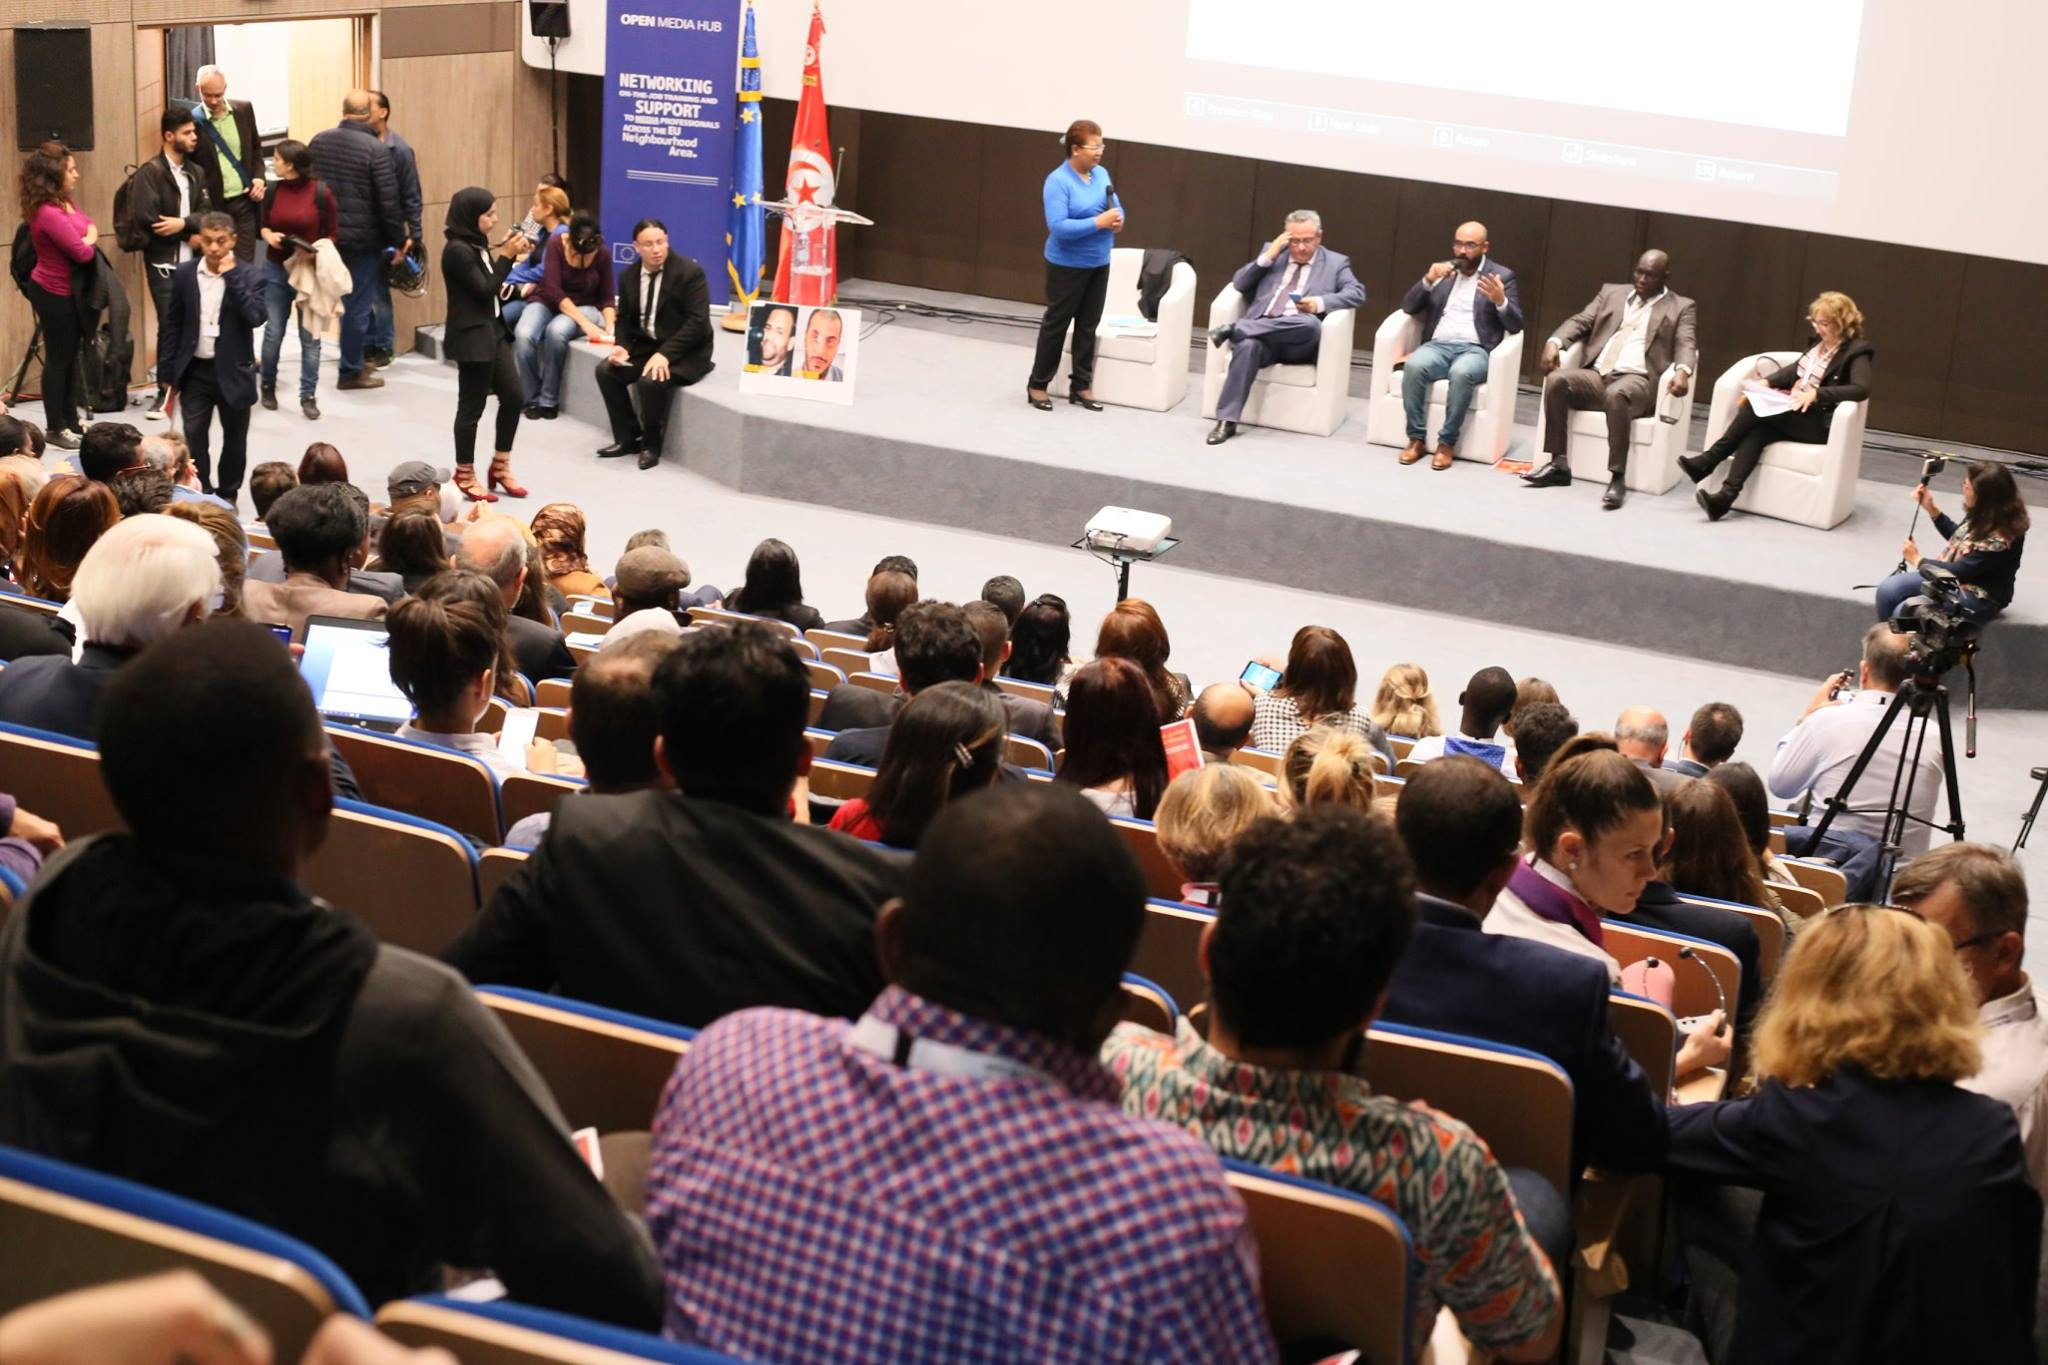 The International journalism forum in Tunis